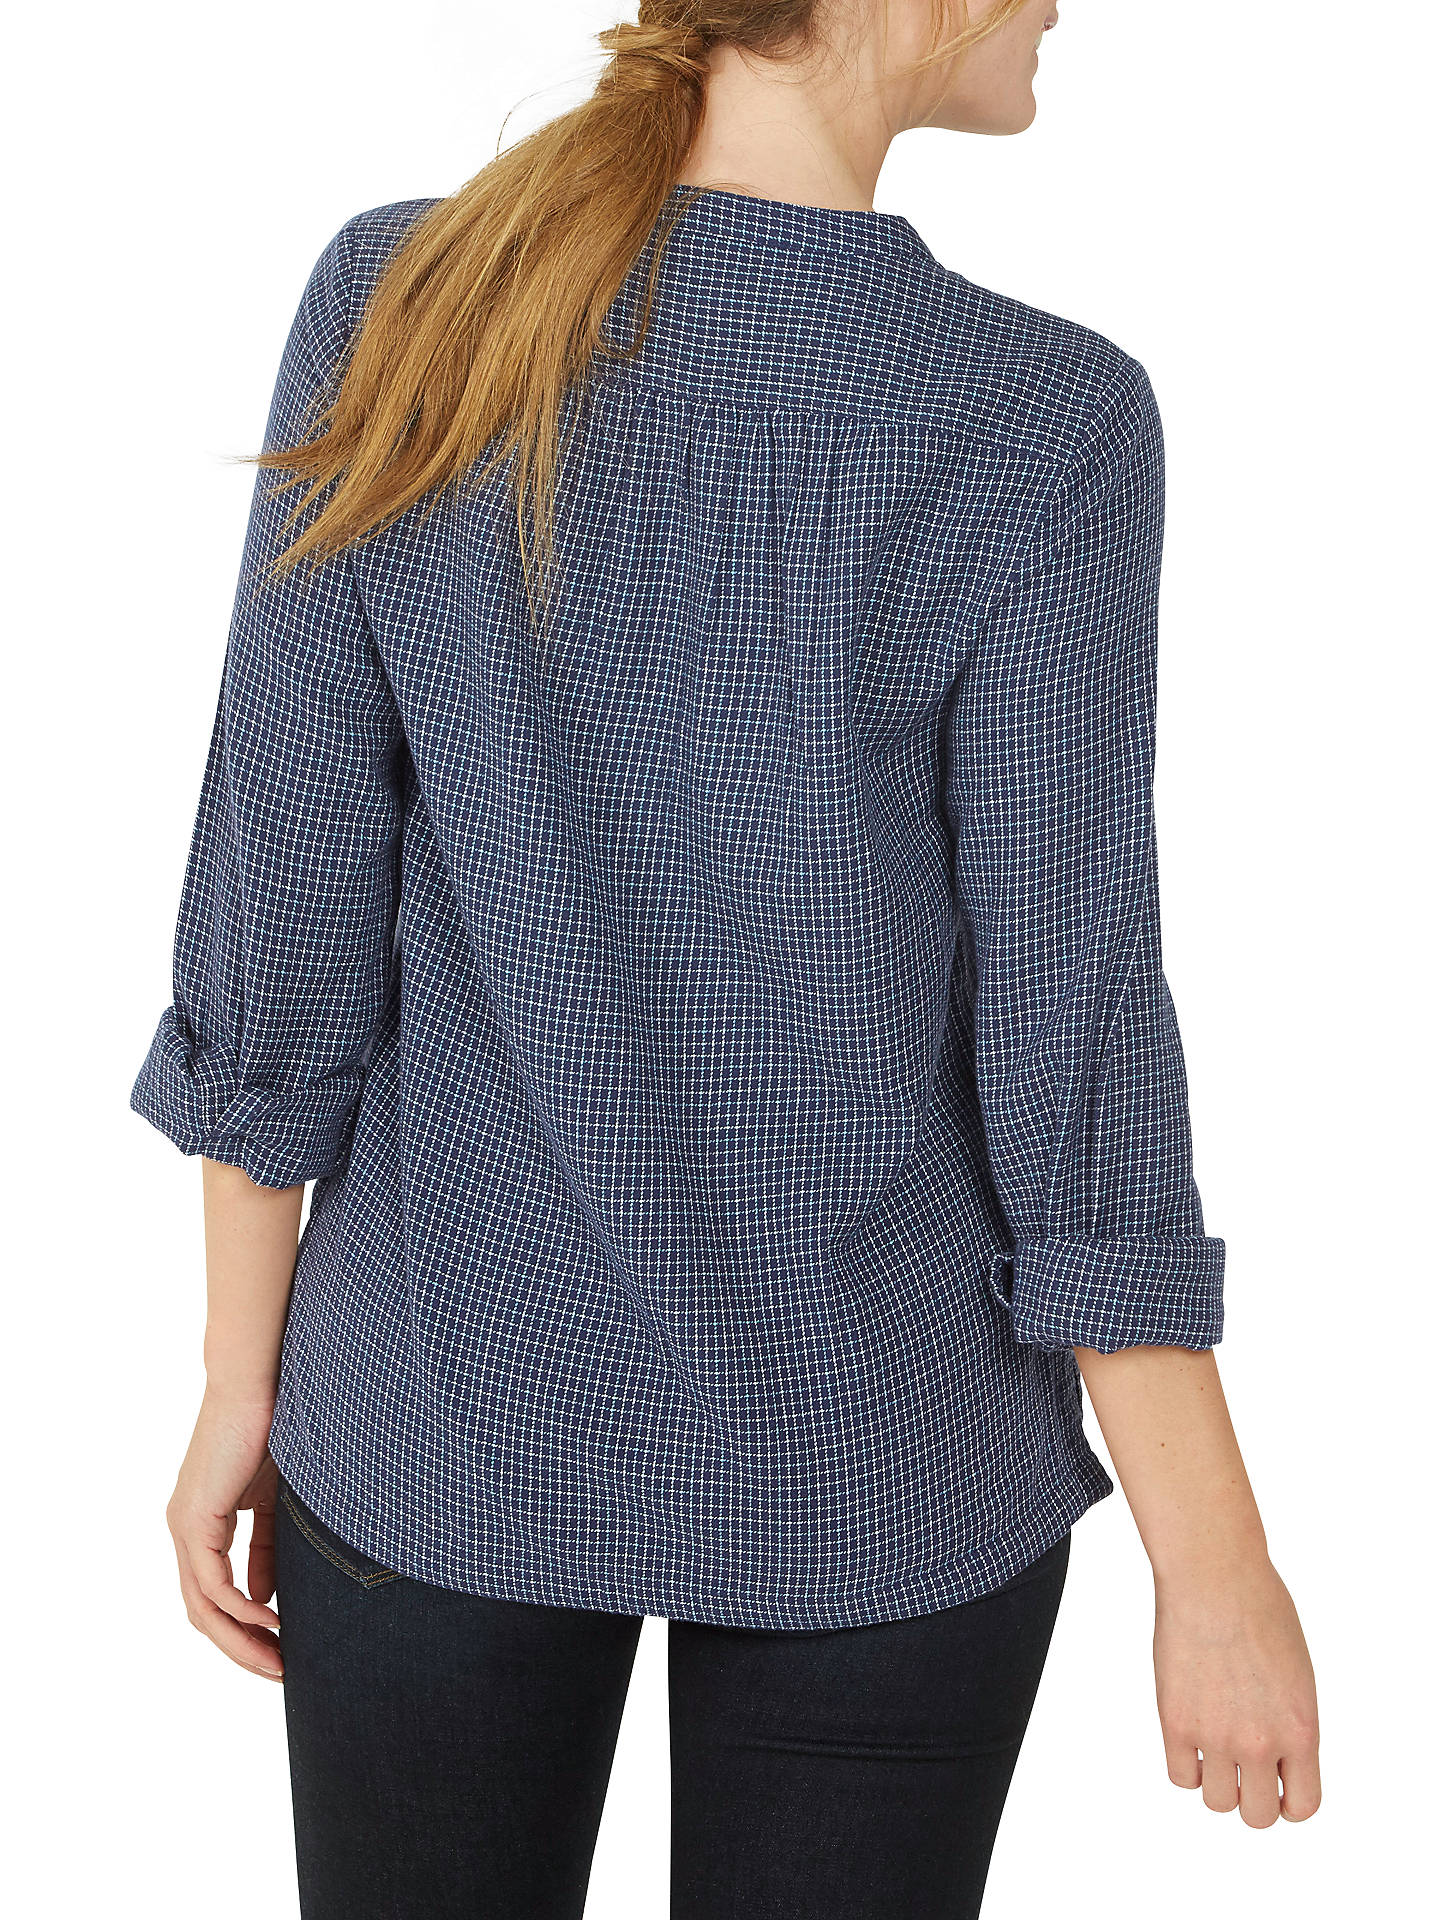 BuyFat Face Frankie Check Popover Shirt, Navy, 6 Online at johnlewis.com